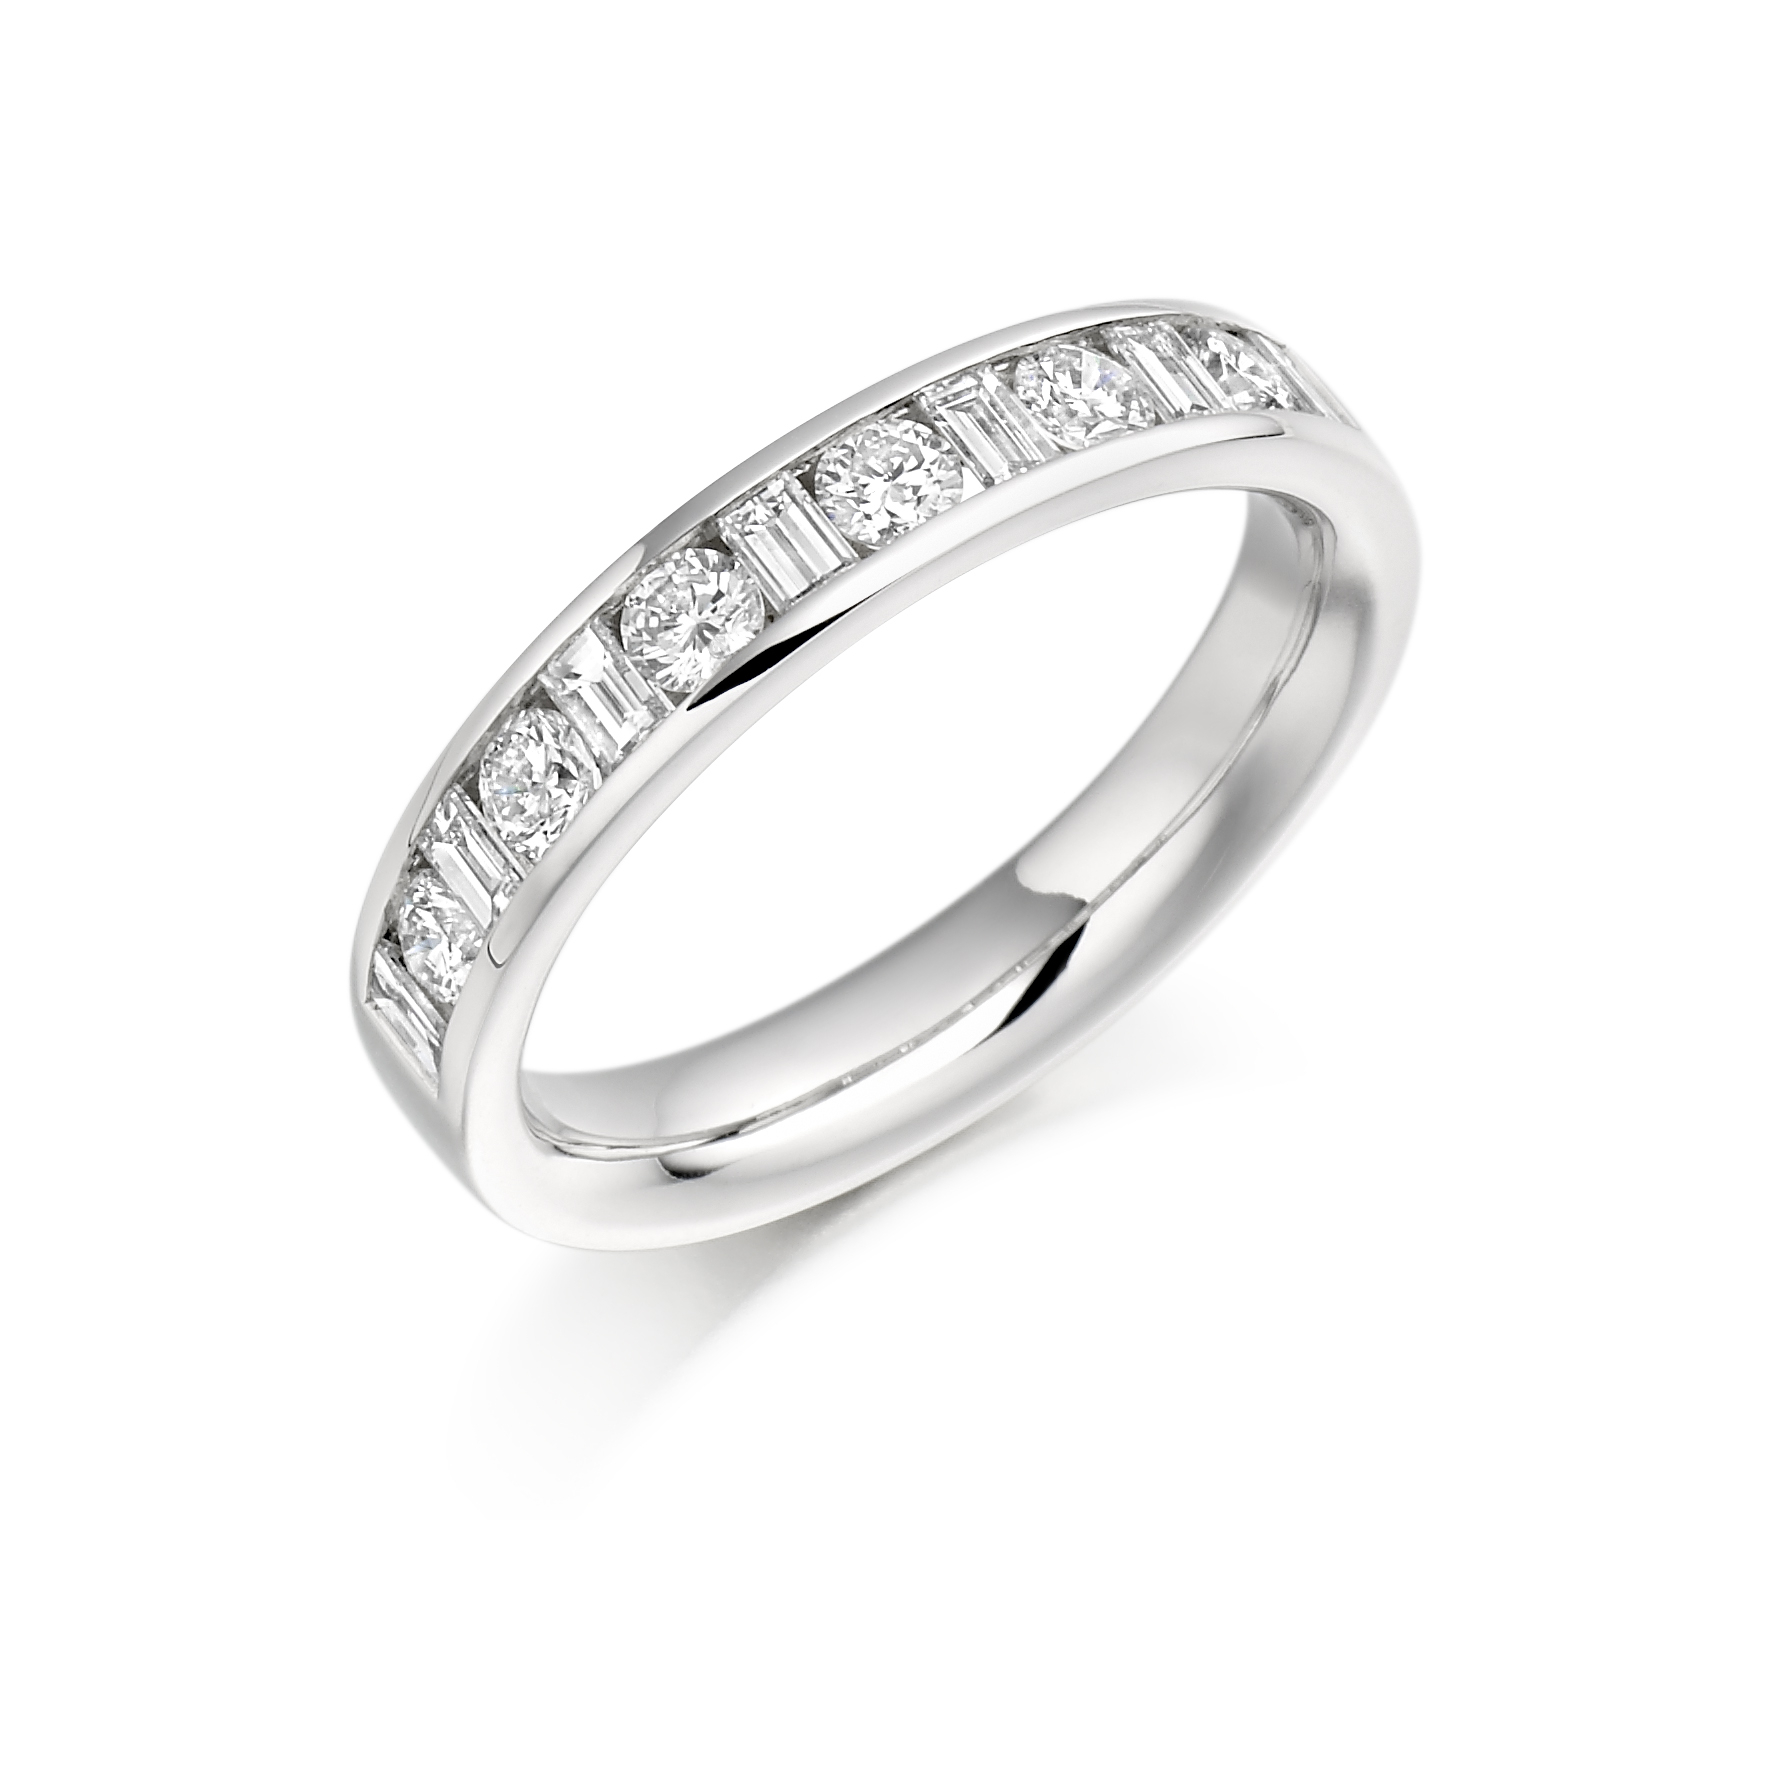 Round Brilliant & Baguette Cut Channel Set Half Eternity In Best And Newest Channel Set Round Brilliant And Baguette Cut Diamond Wedding Bands (View 22 of 25)